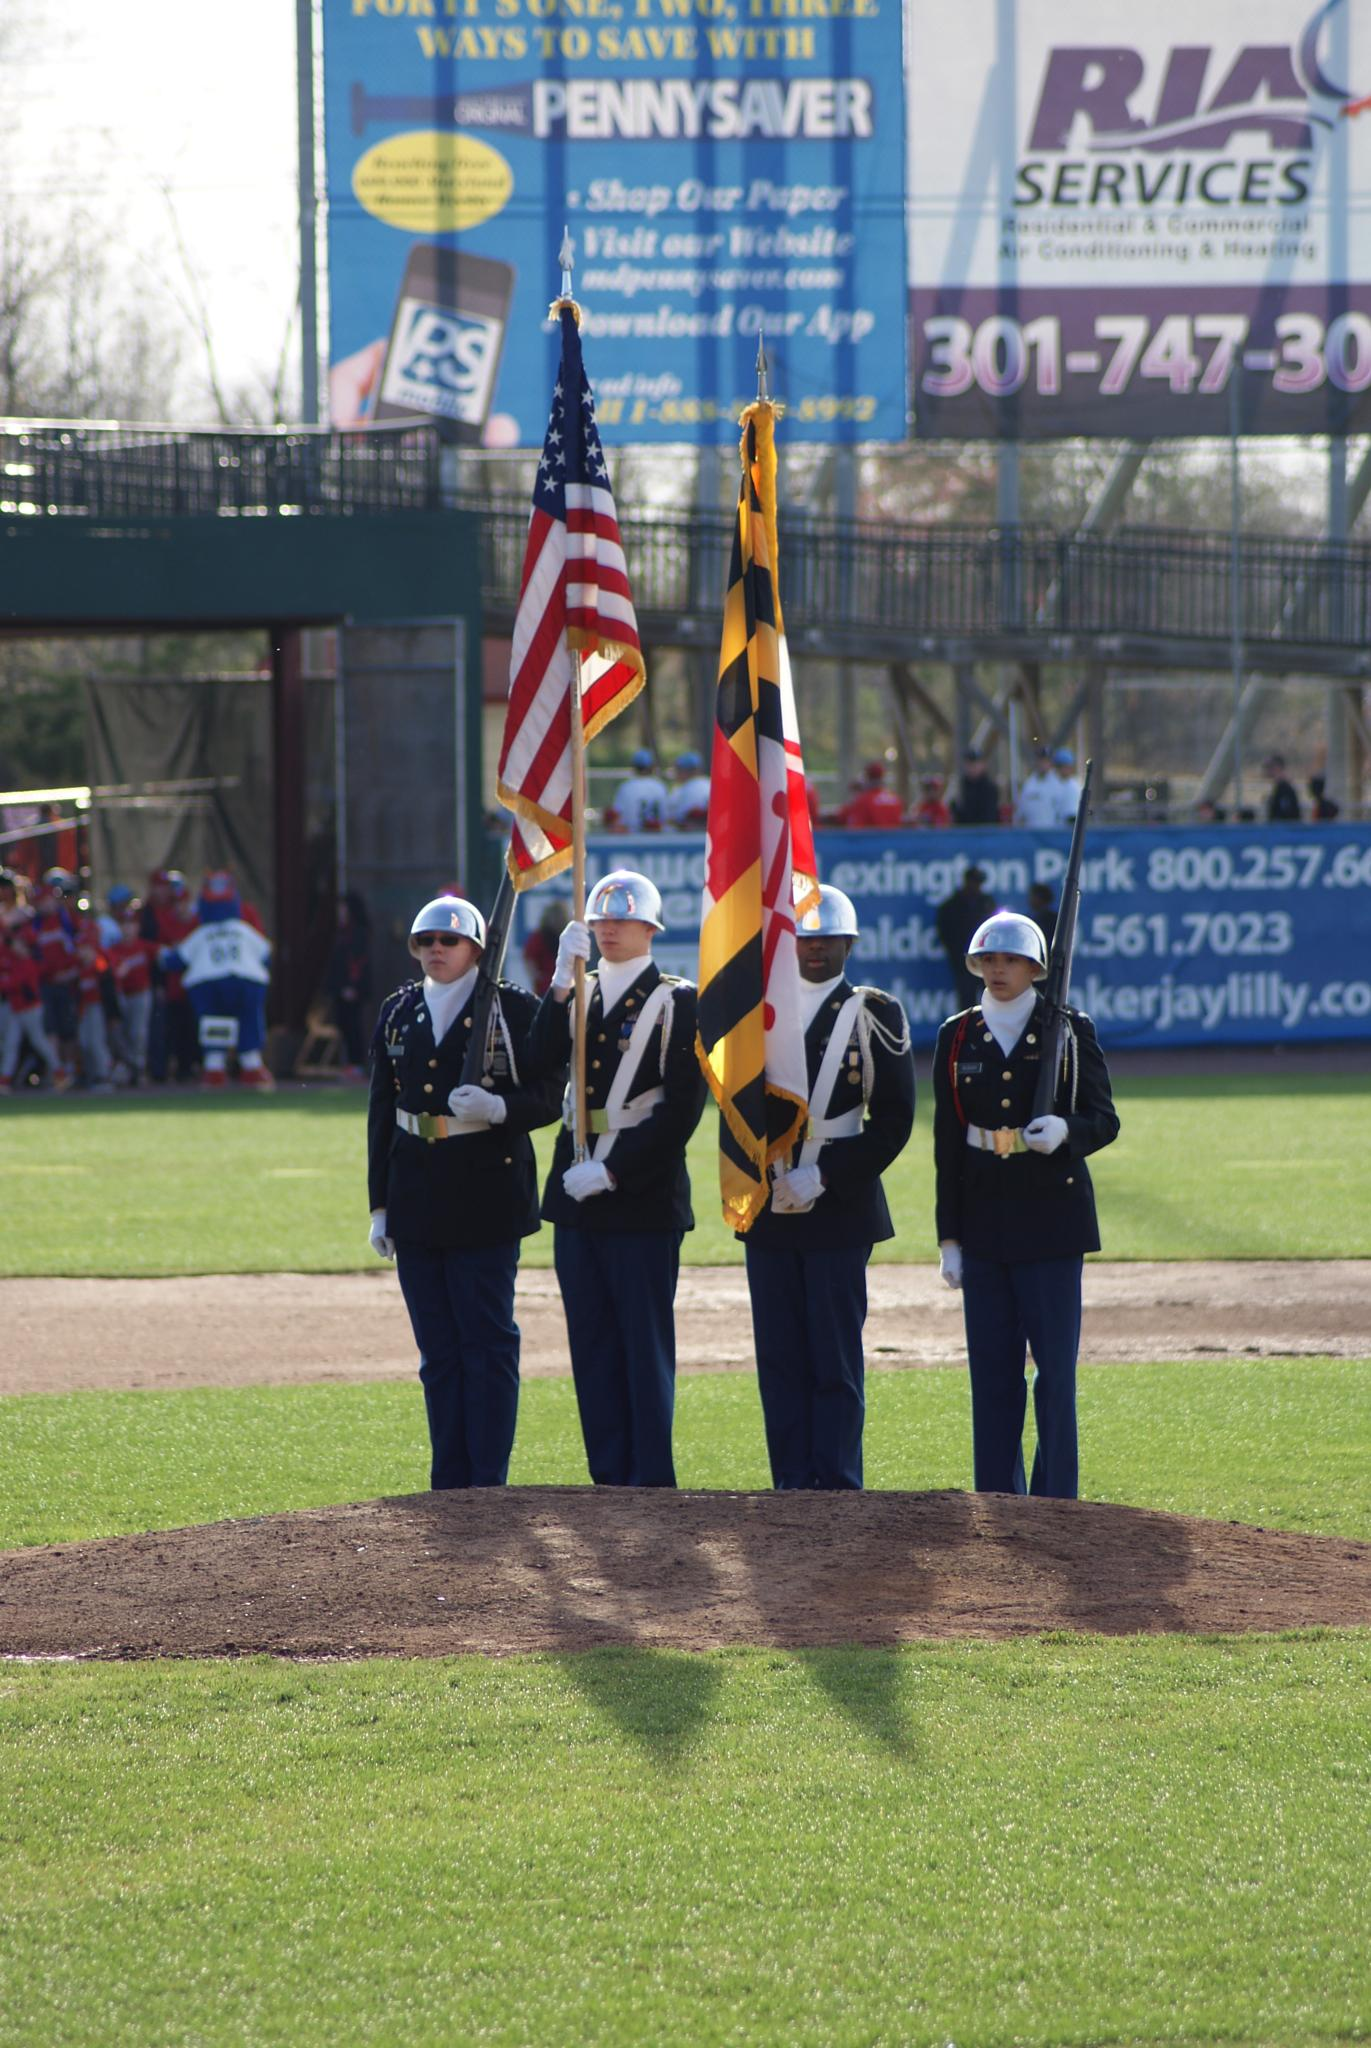 Opening day parade by amber.hutchins.923